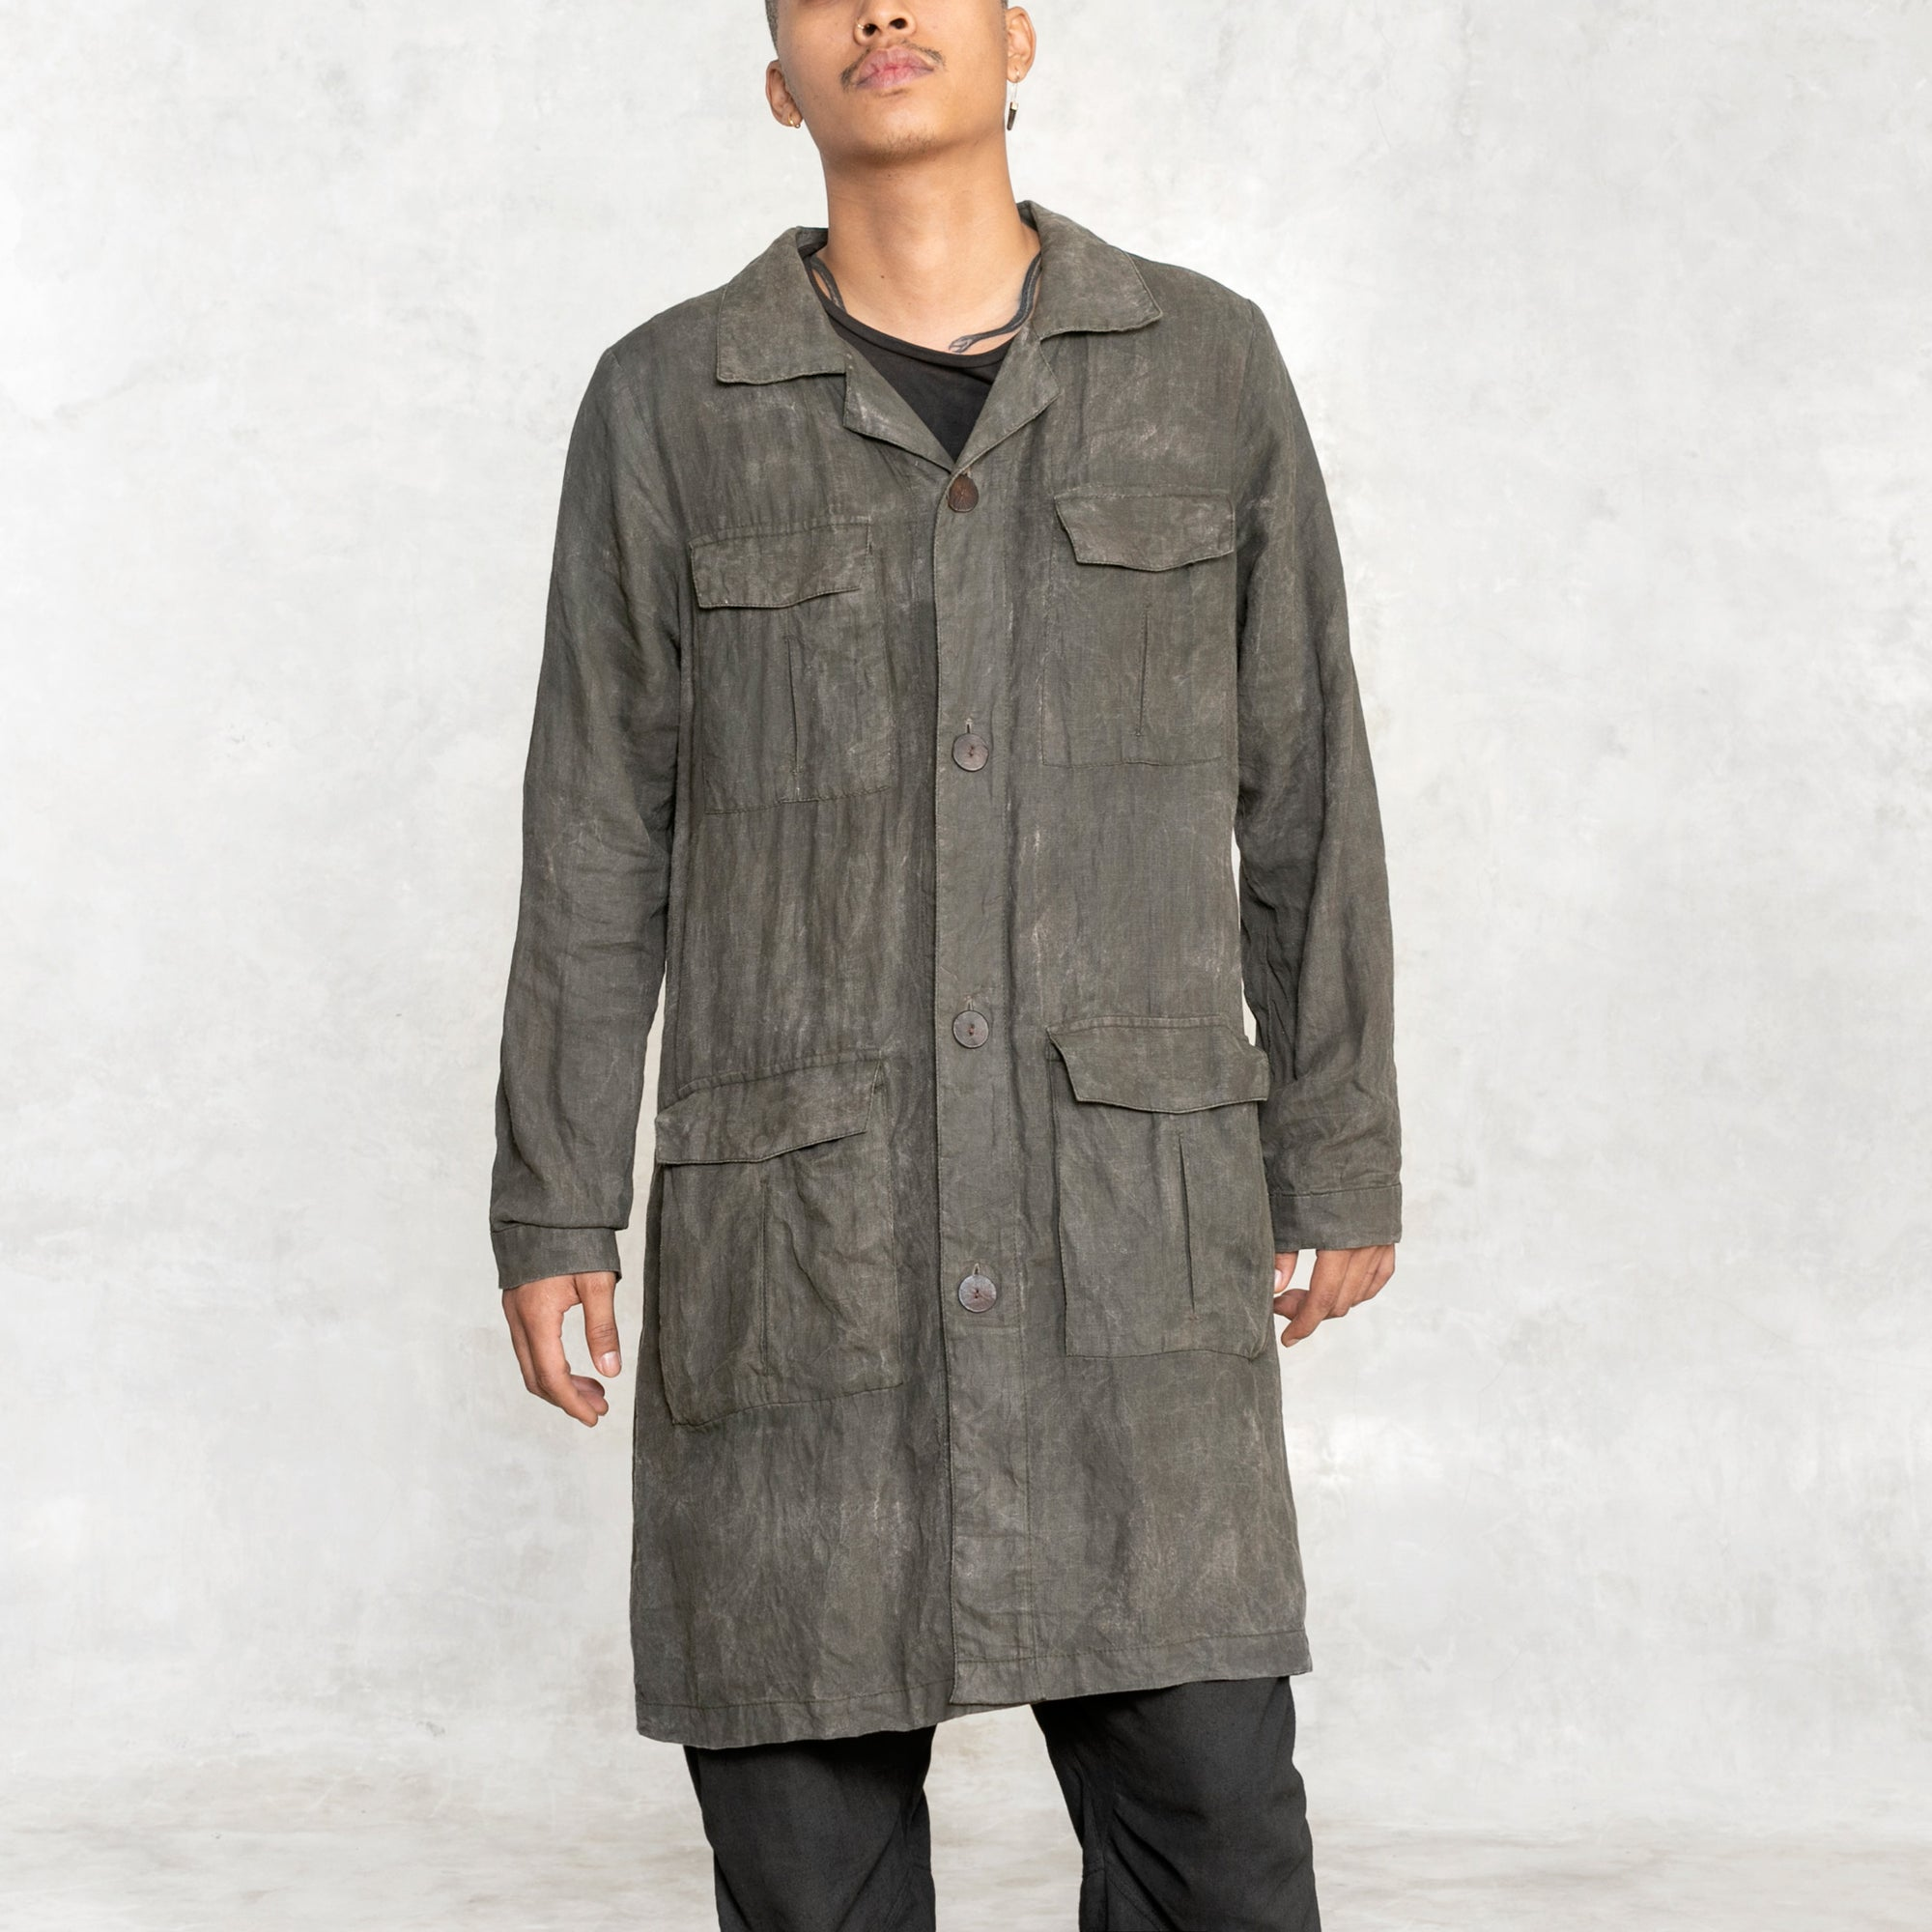 men's olive trenchcoat